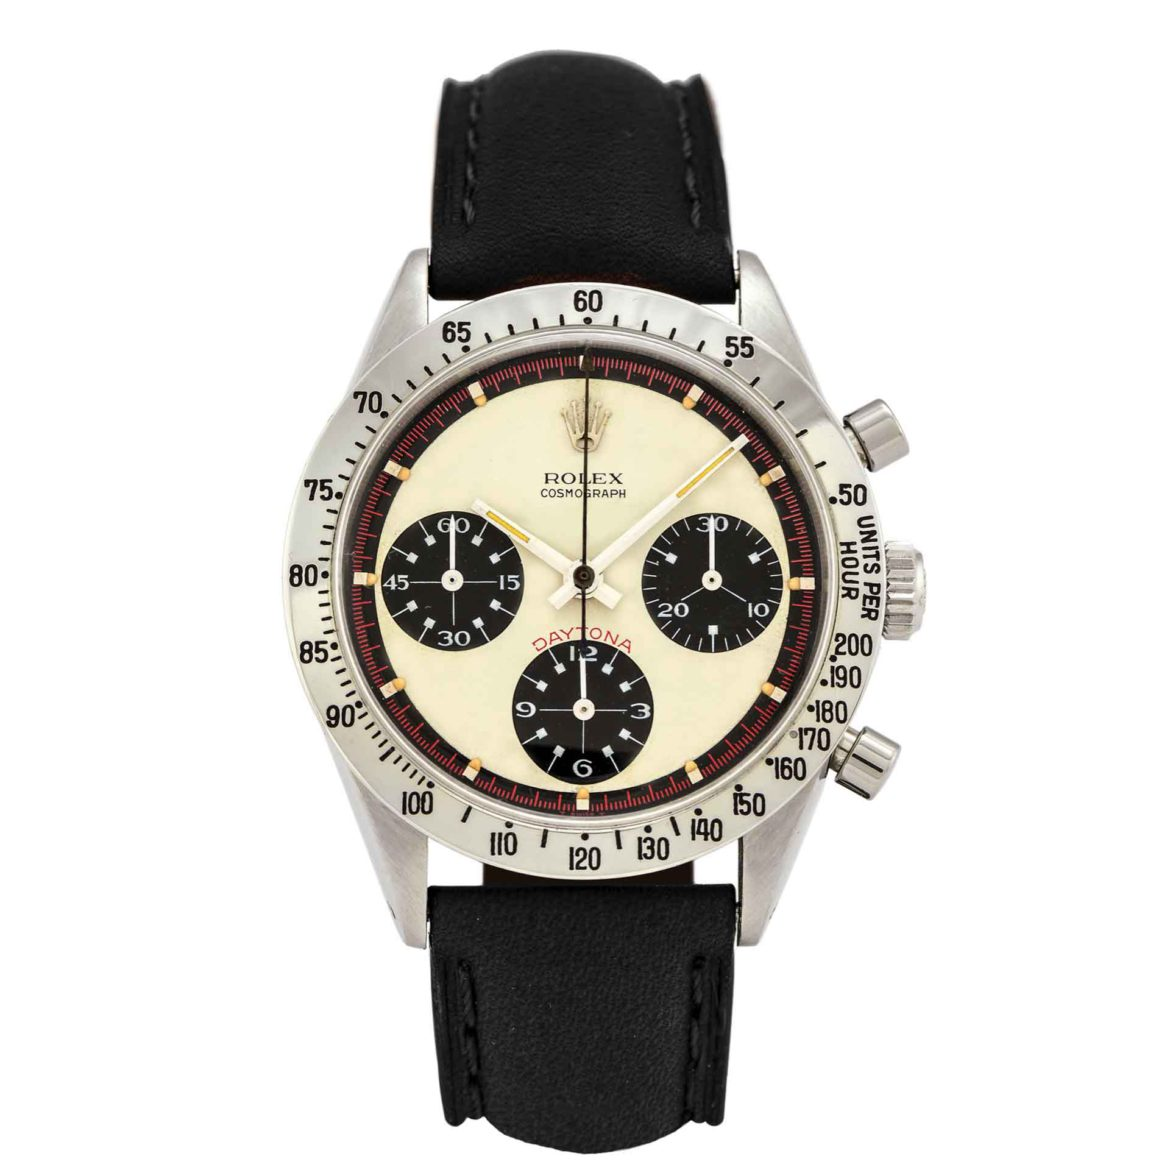 Rolex Cosmograph Daytona Ref. 6239 Paul Newman from 1968